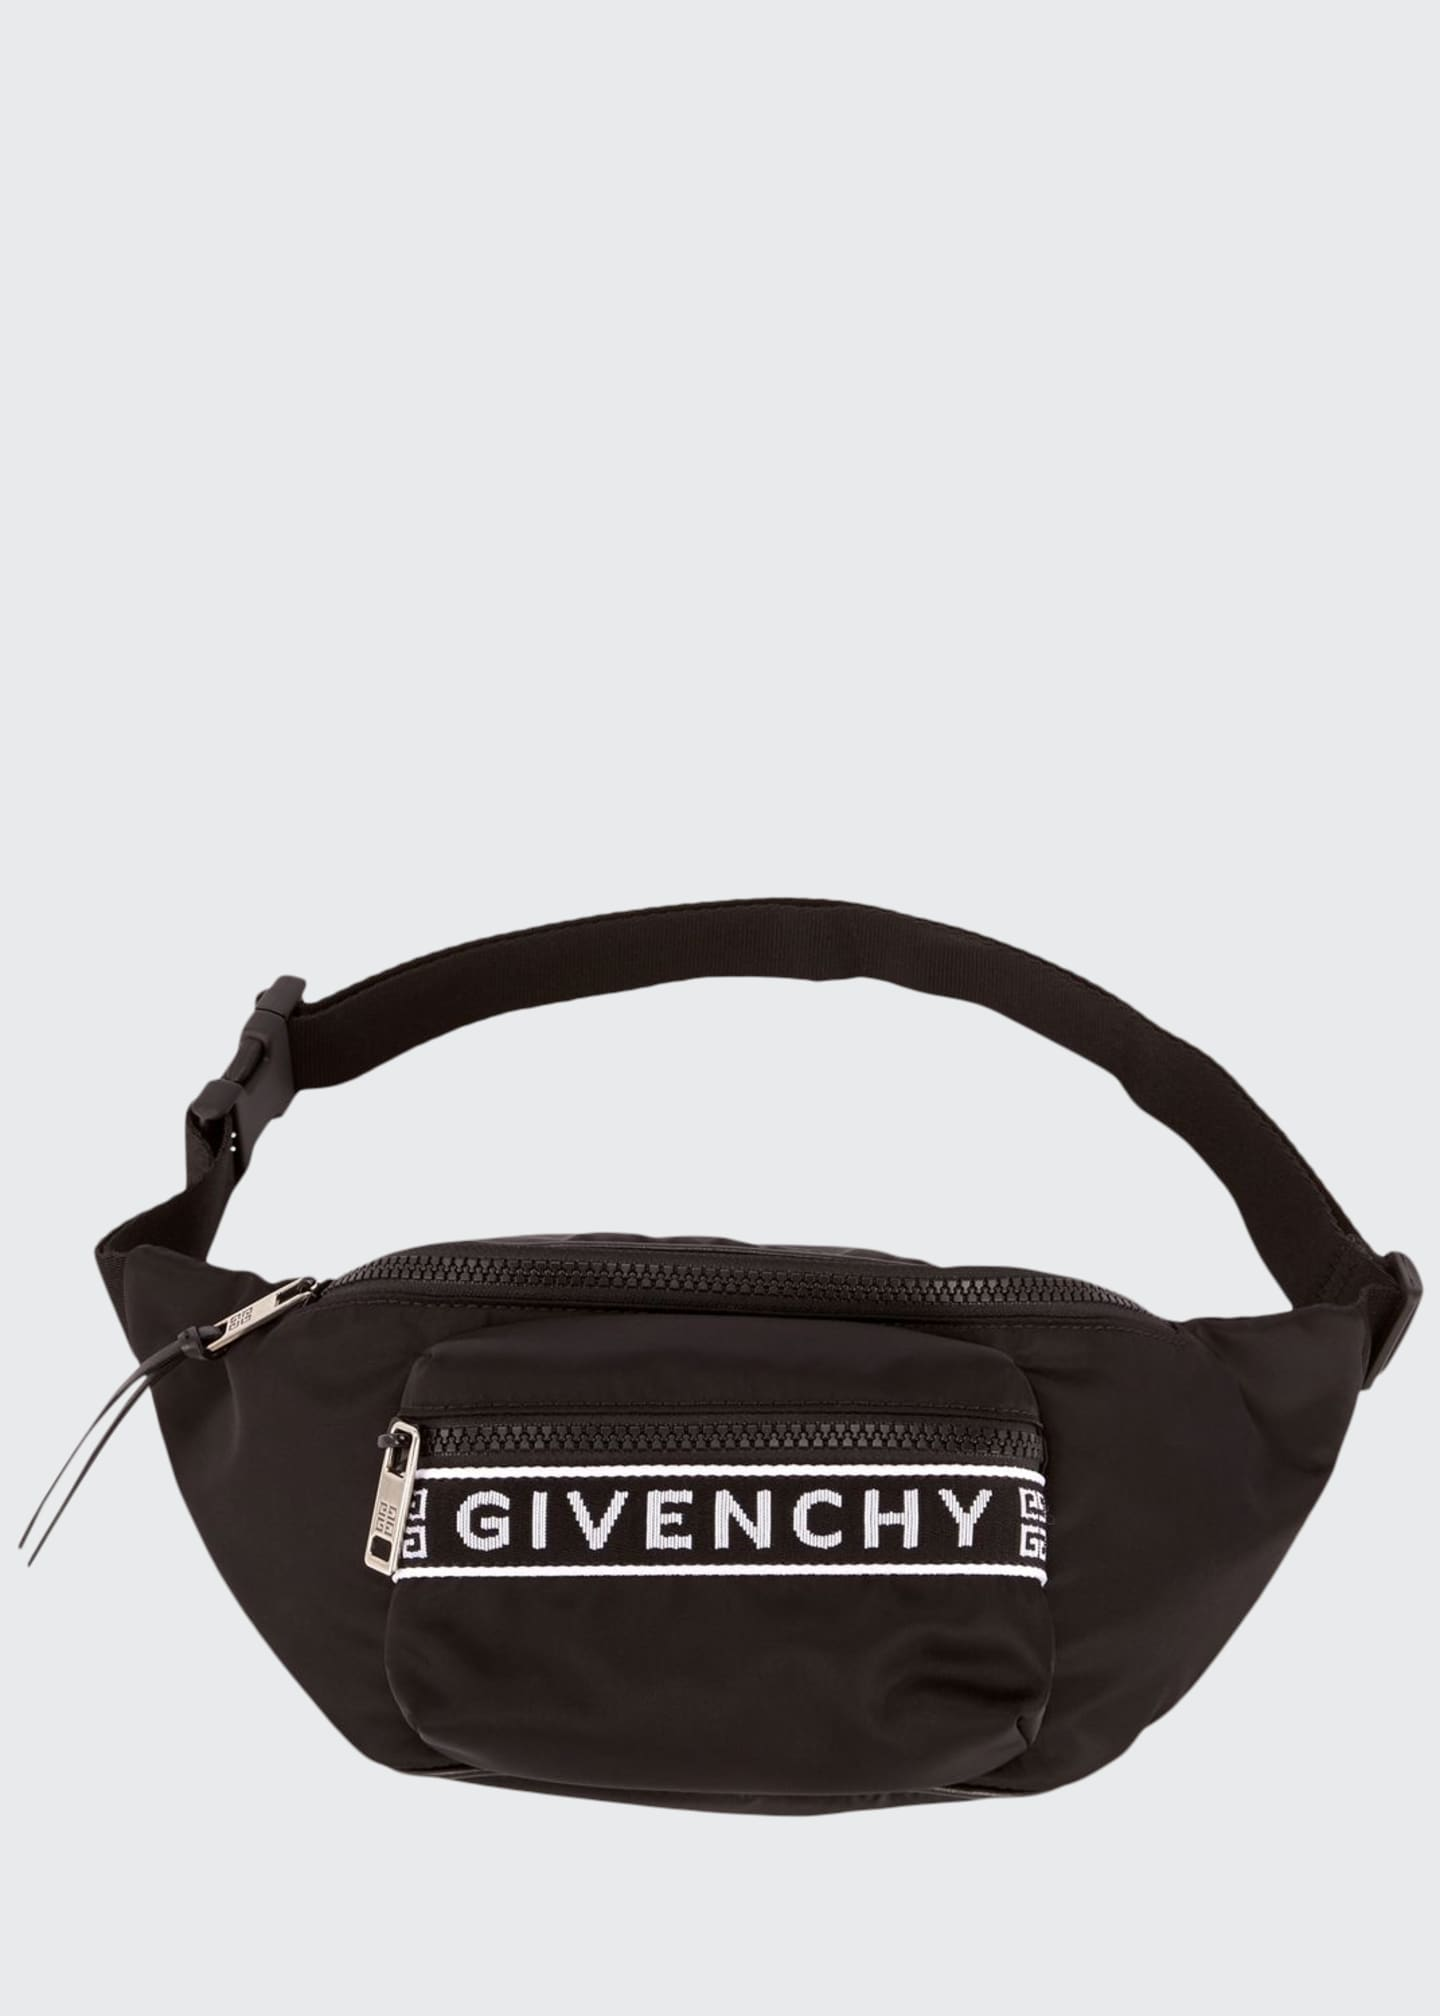 Givenchy Men's Light 3 Belt Bag